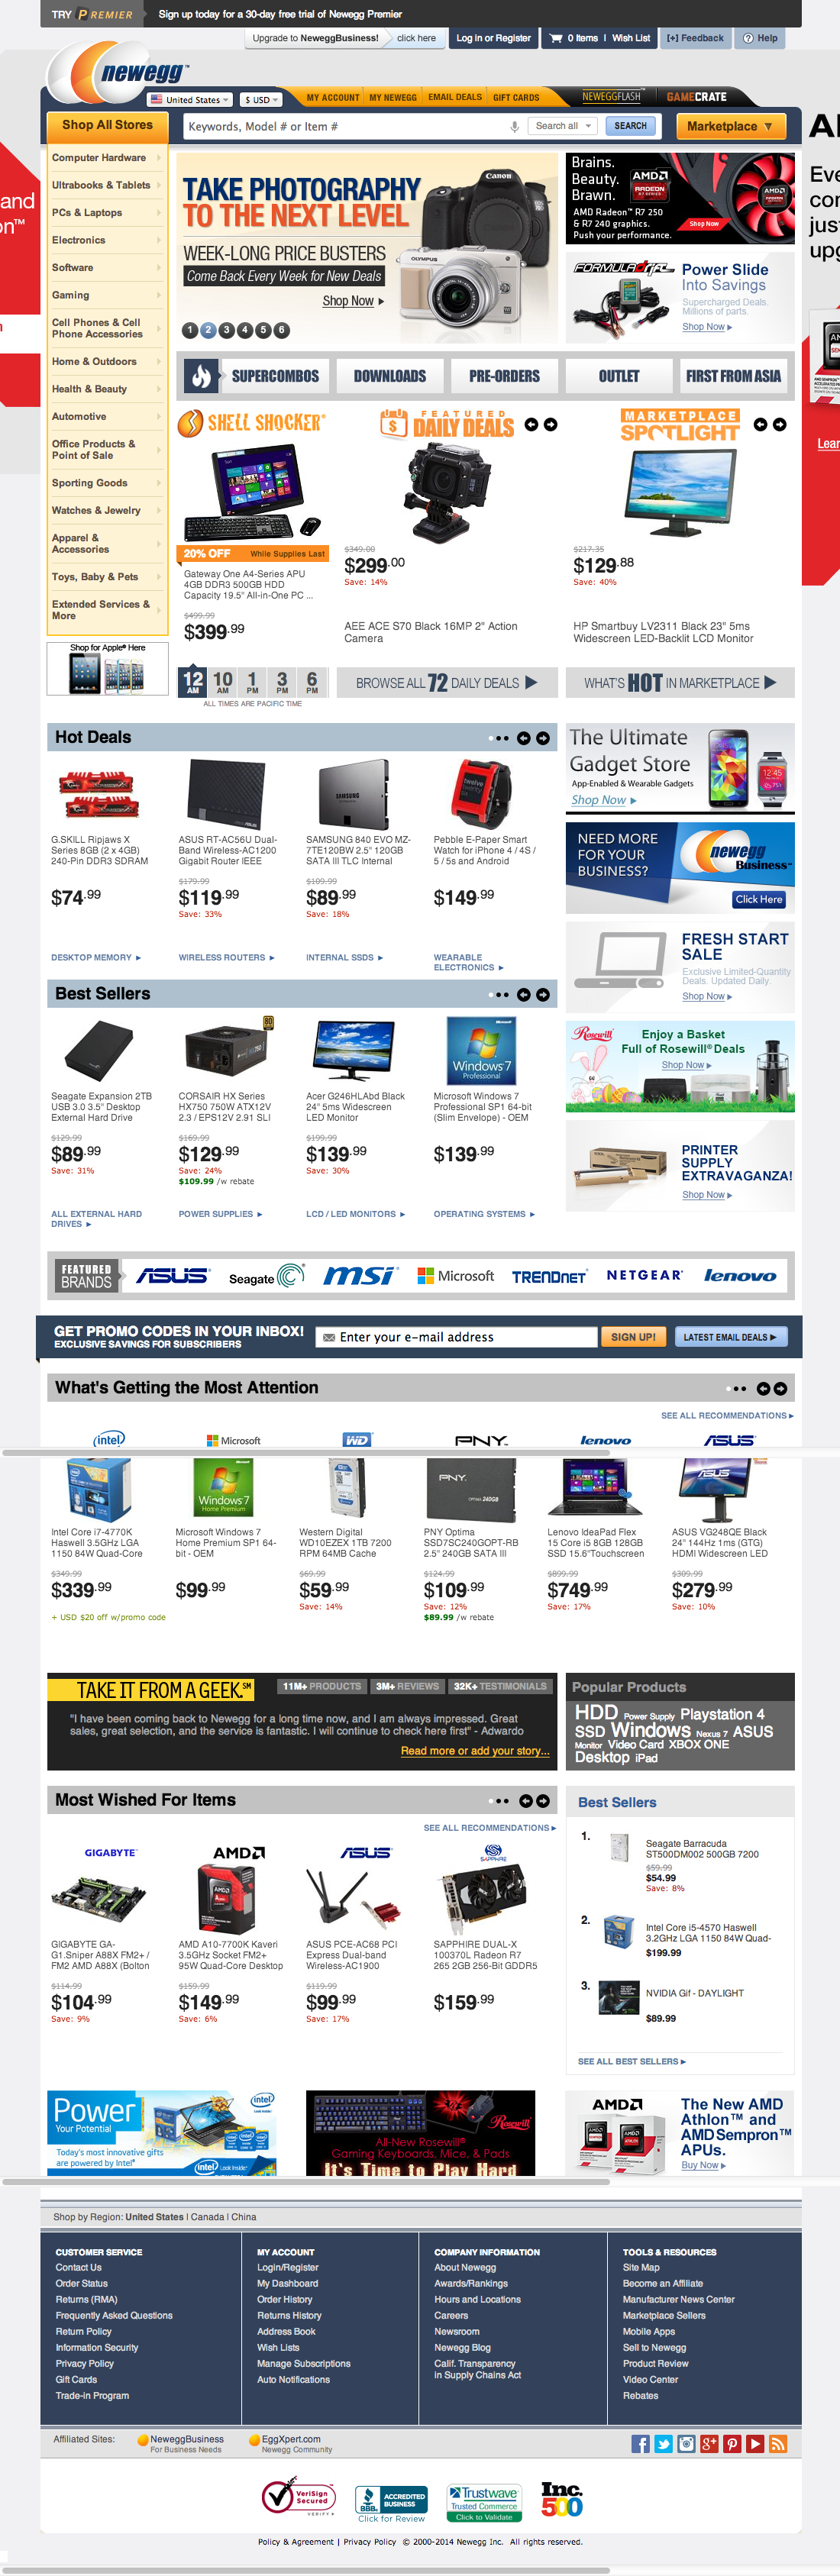 Newegg's Search Field